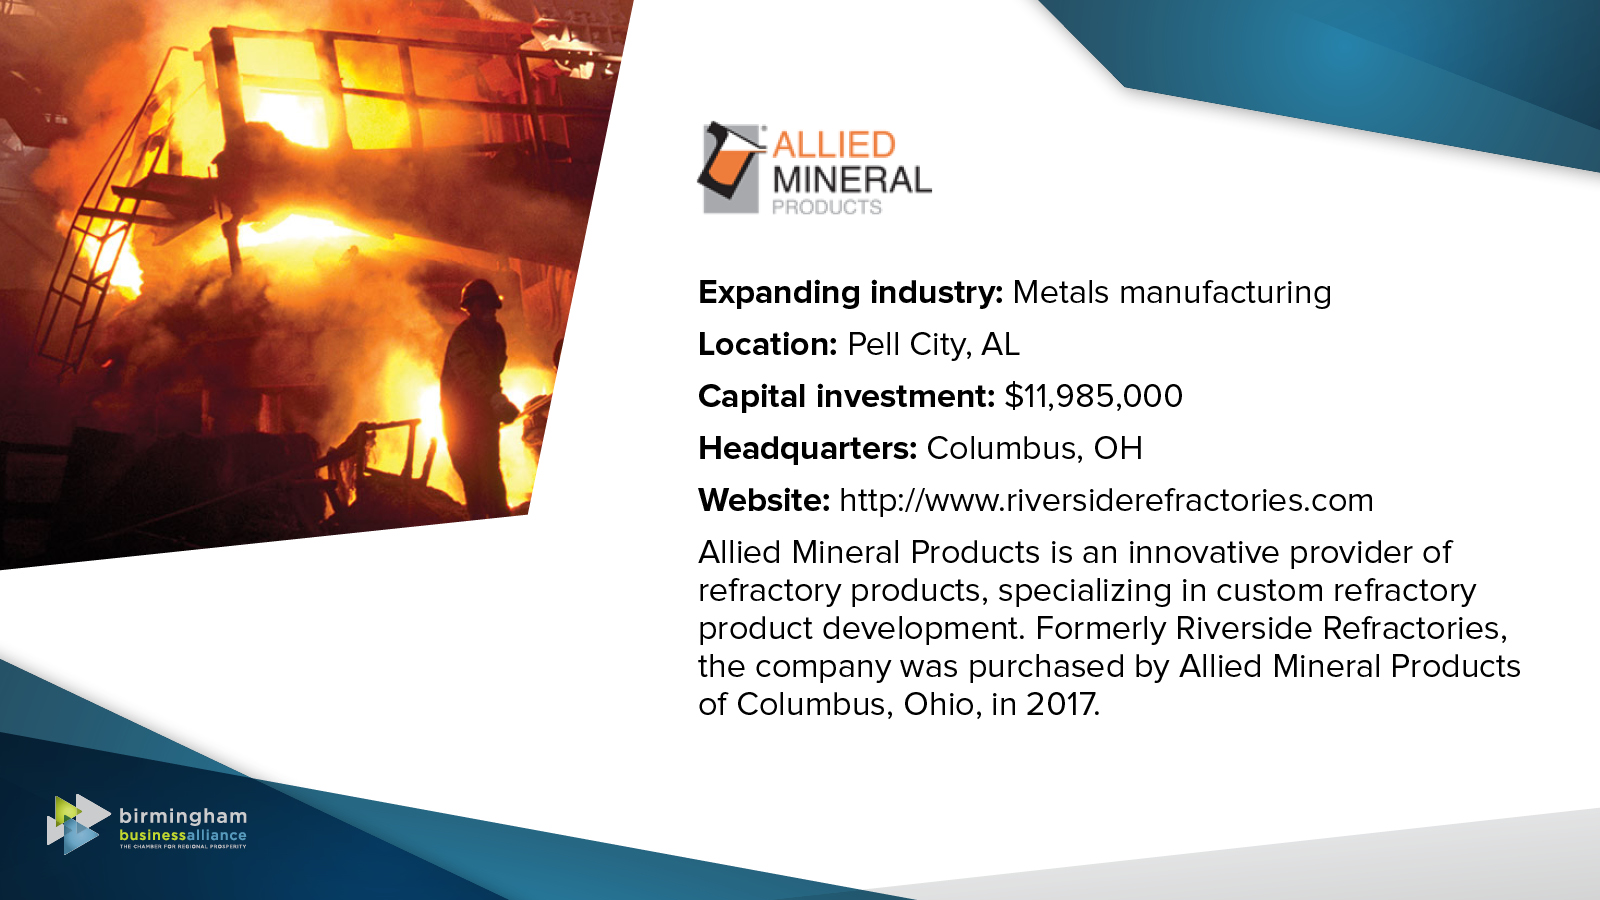 4) Allied Mineral Products